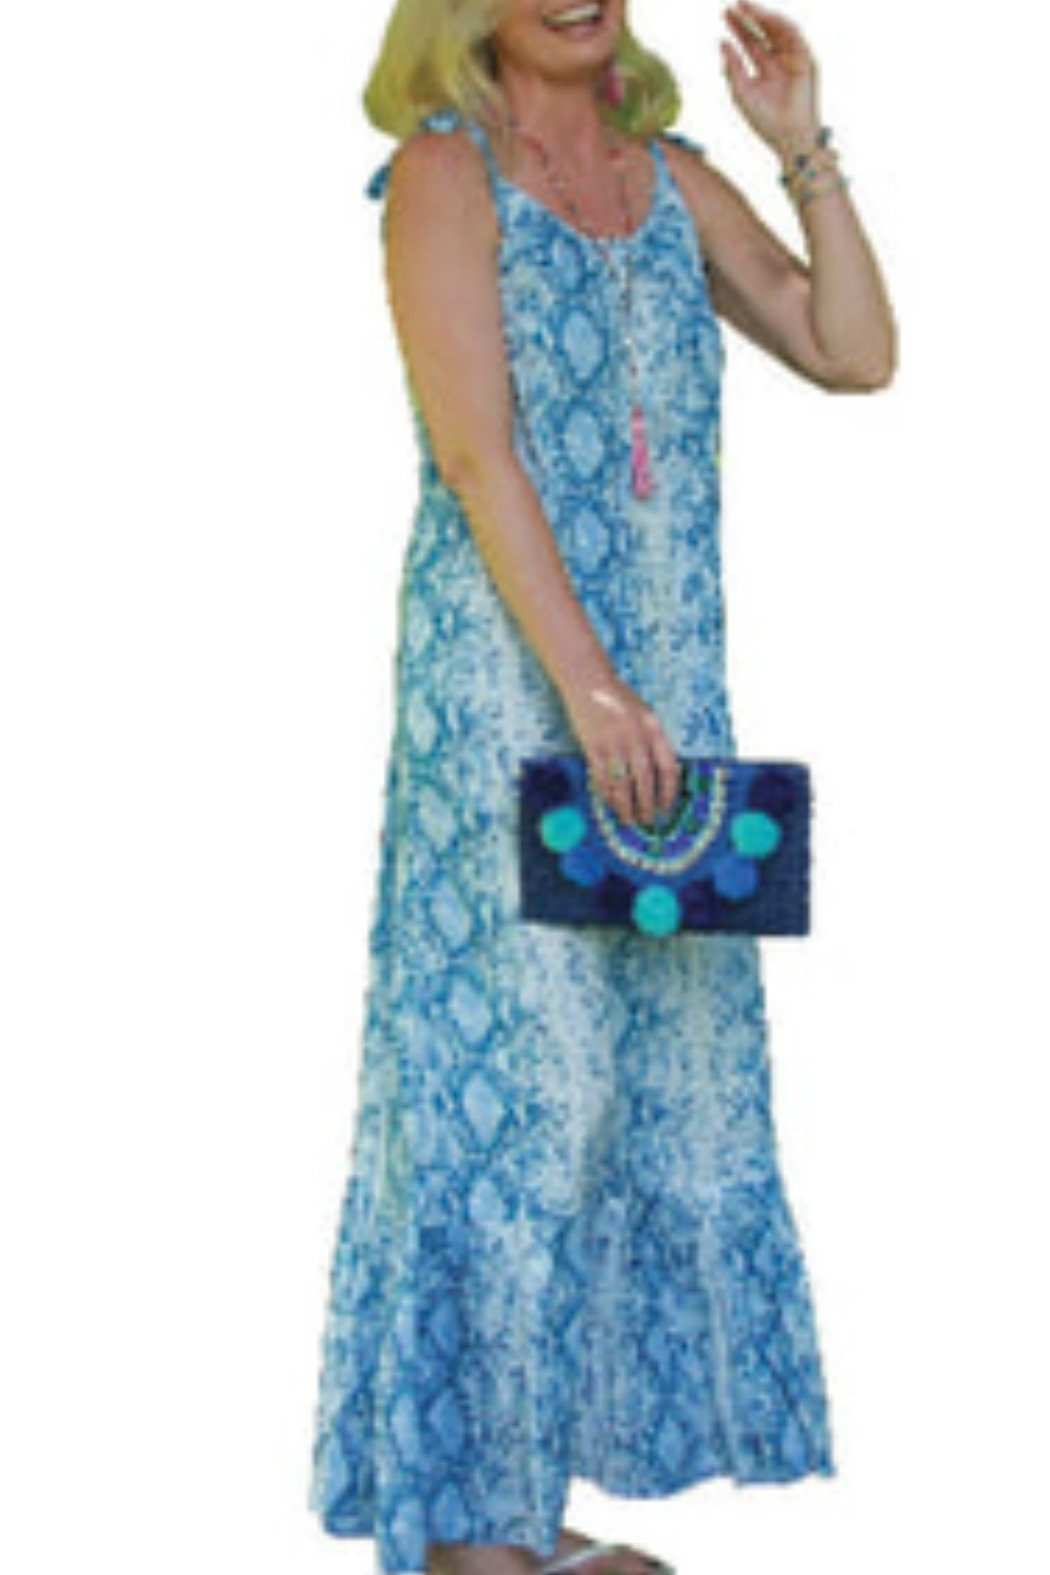 Lani Lau Hawaii Ariel Dress - Snake Print - Main Image